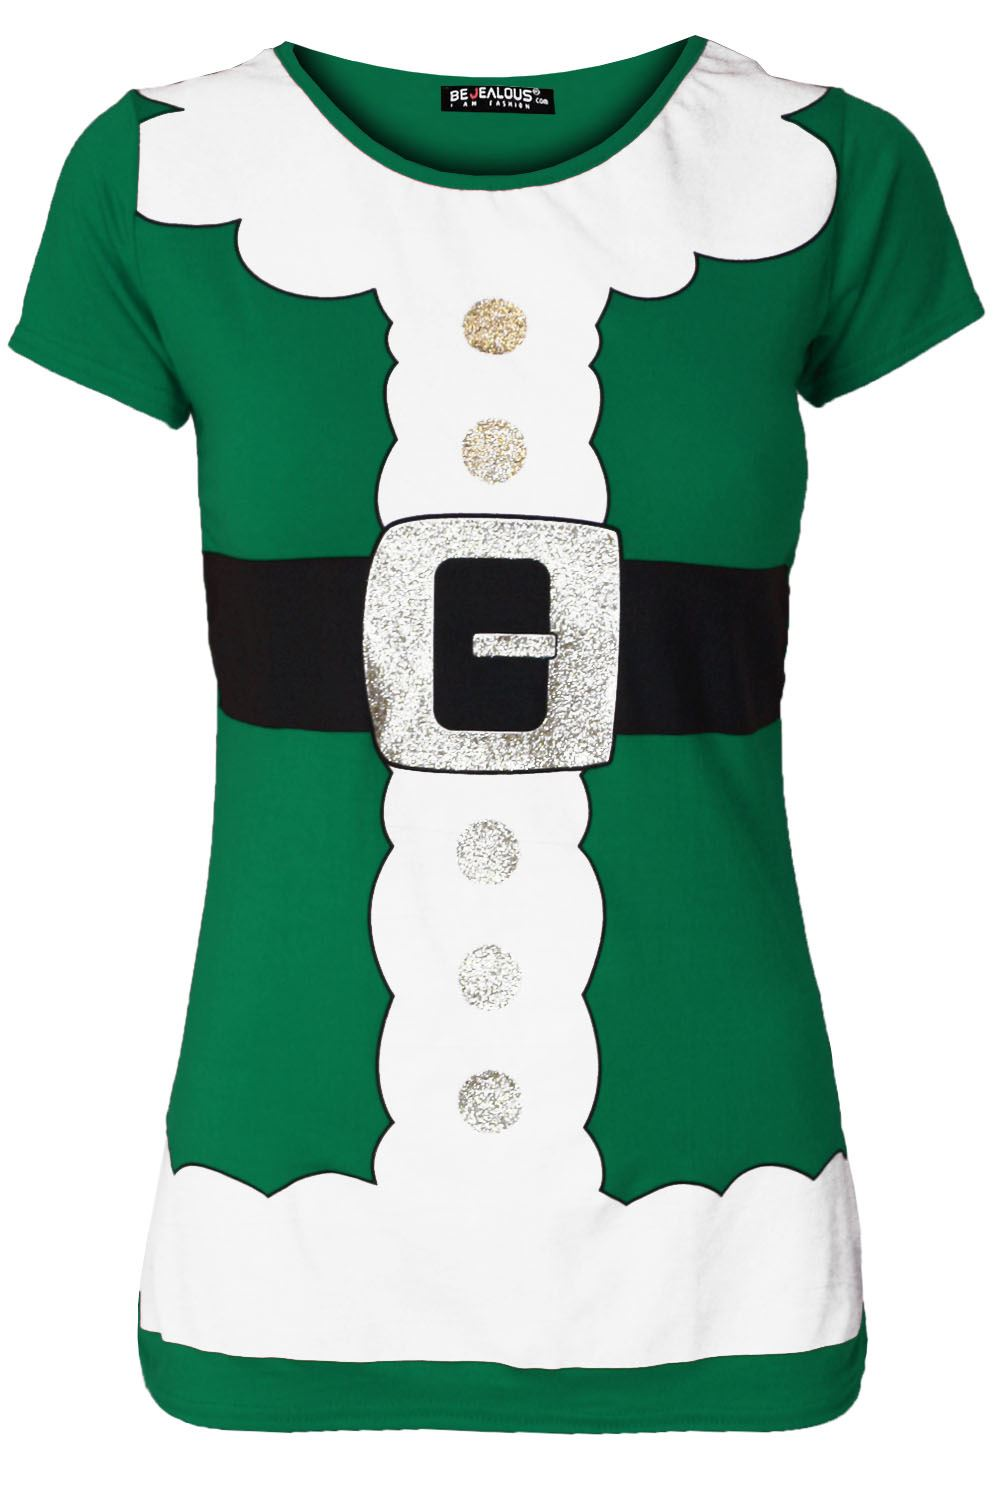 thumbnail 13 - Womens-Christmas-Xmas-Pullover-Elf-Candystick-Snowflakes-Ladies-T-Shirt-Tee-Top